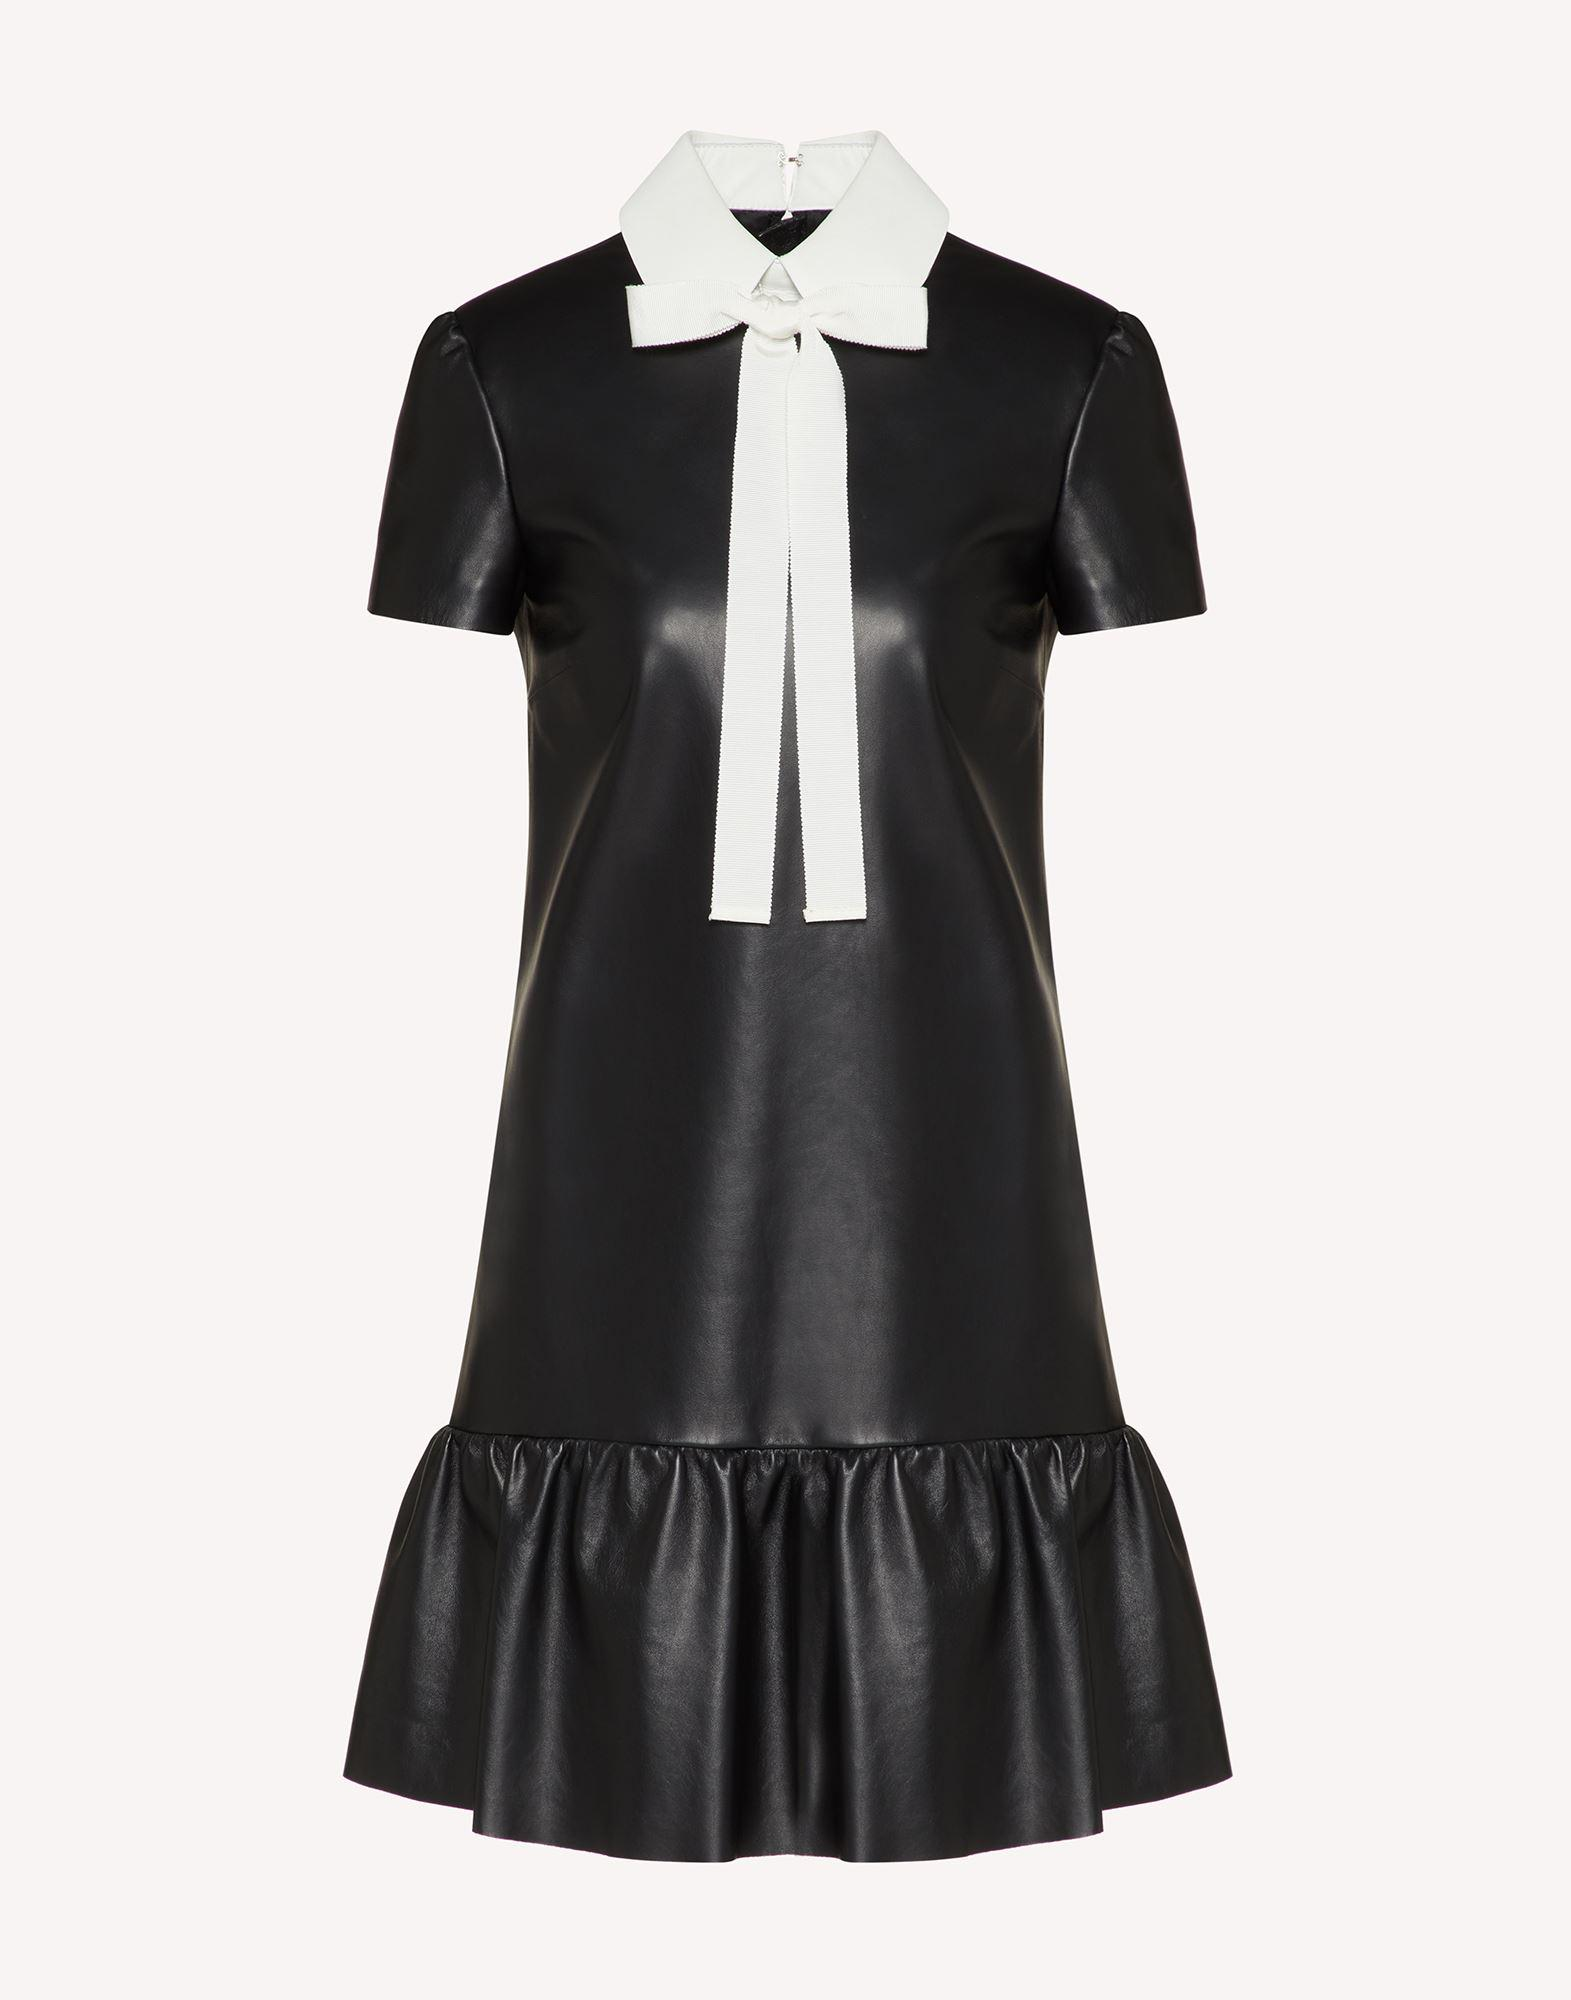 NAPPA LEATHER DRESS WITH COLLAR DETAIL 4